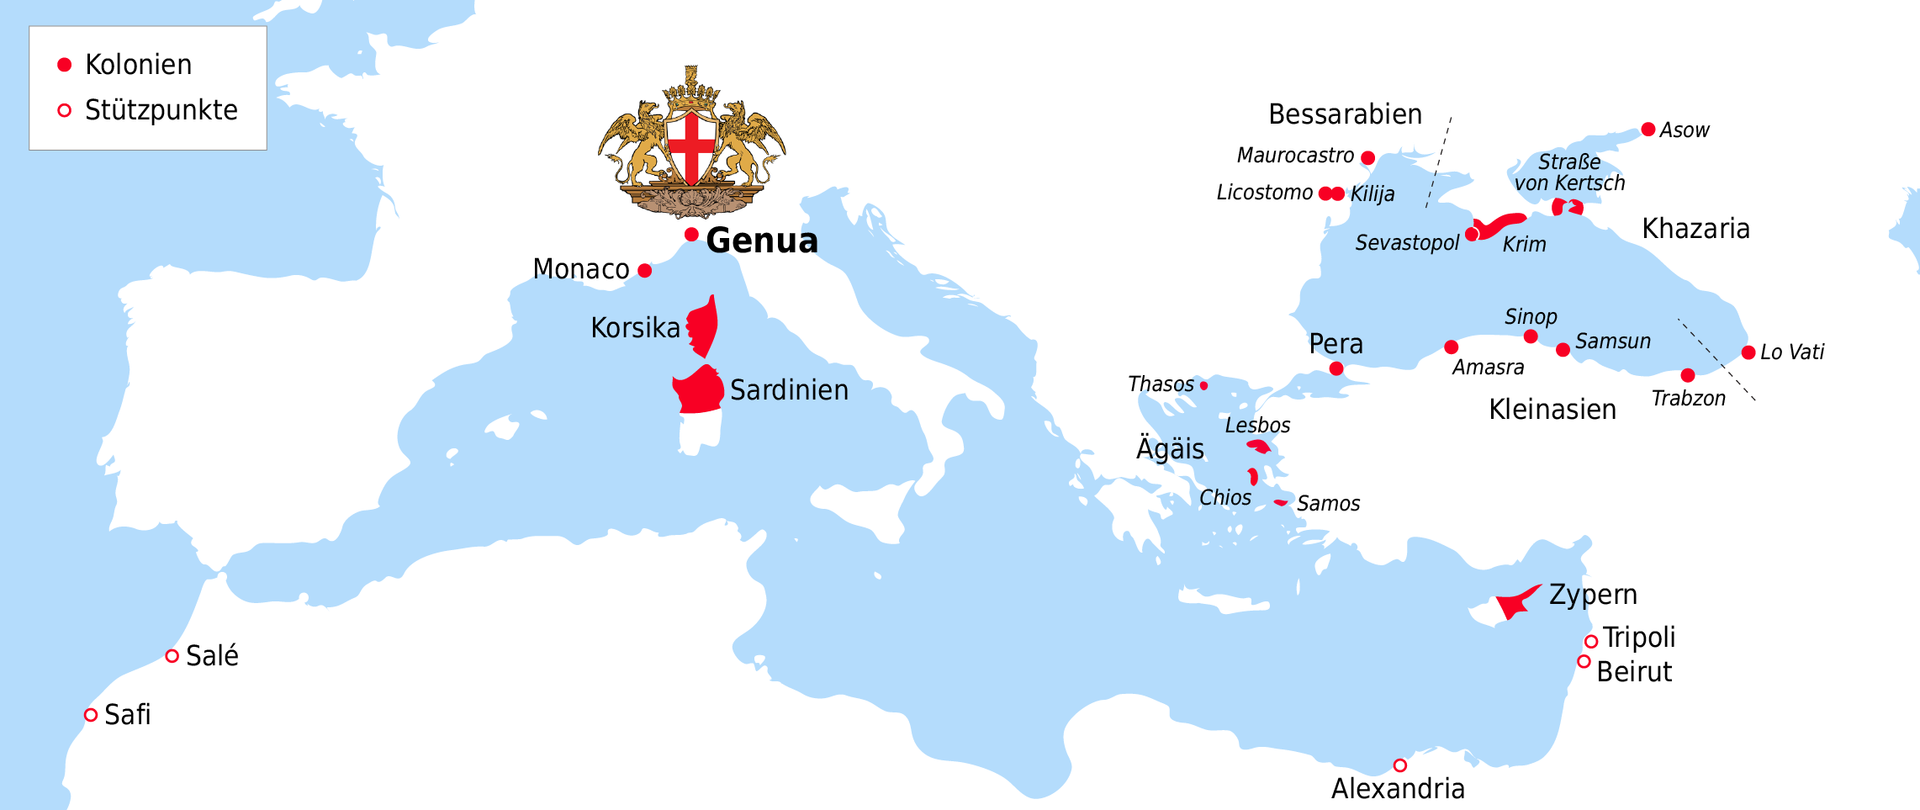 Colonies and strongholds of Genoa on the Black Sea coast